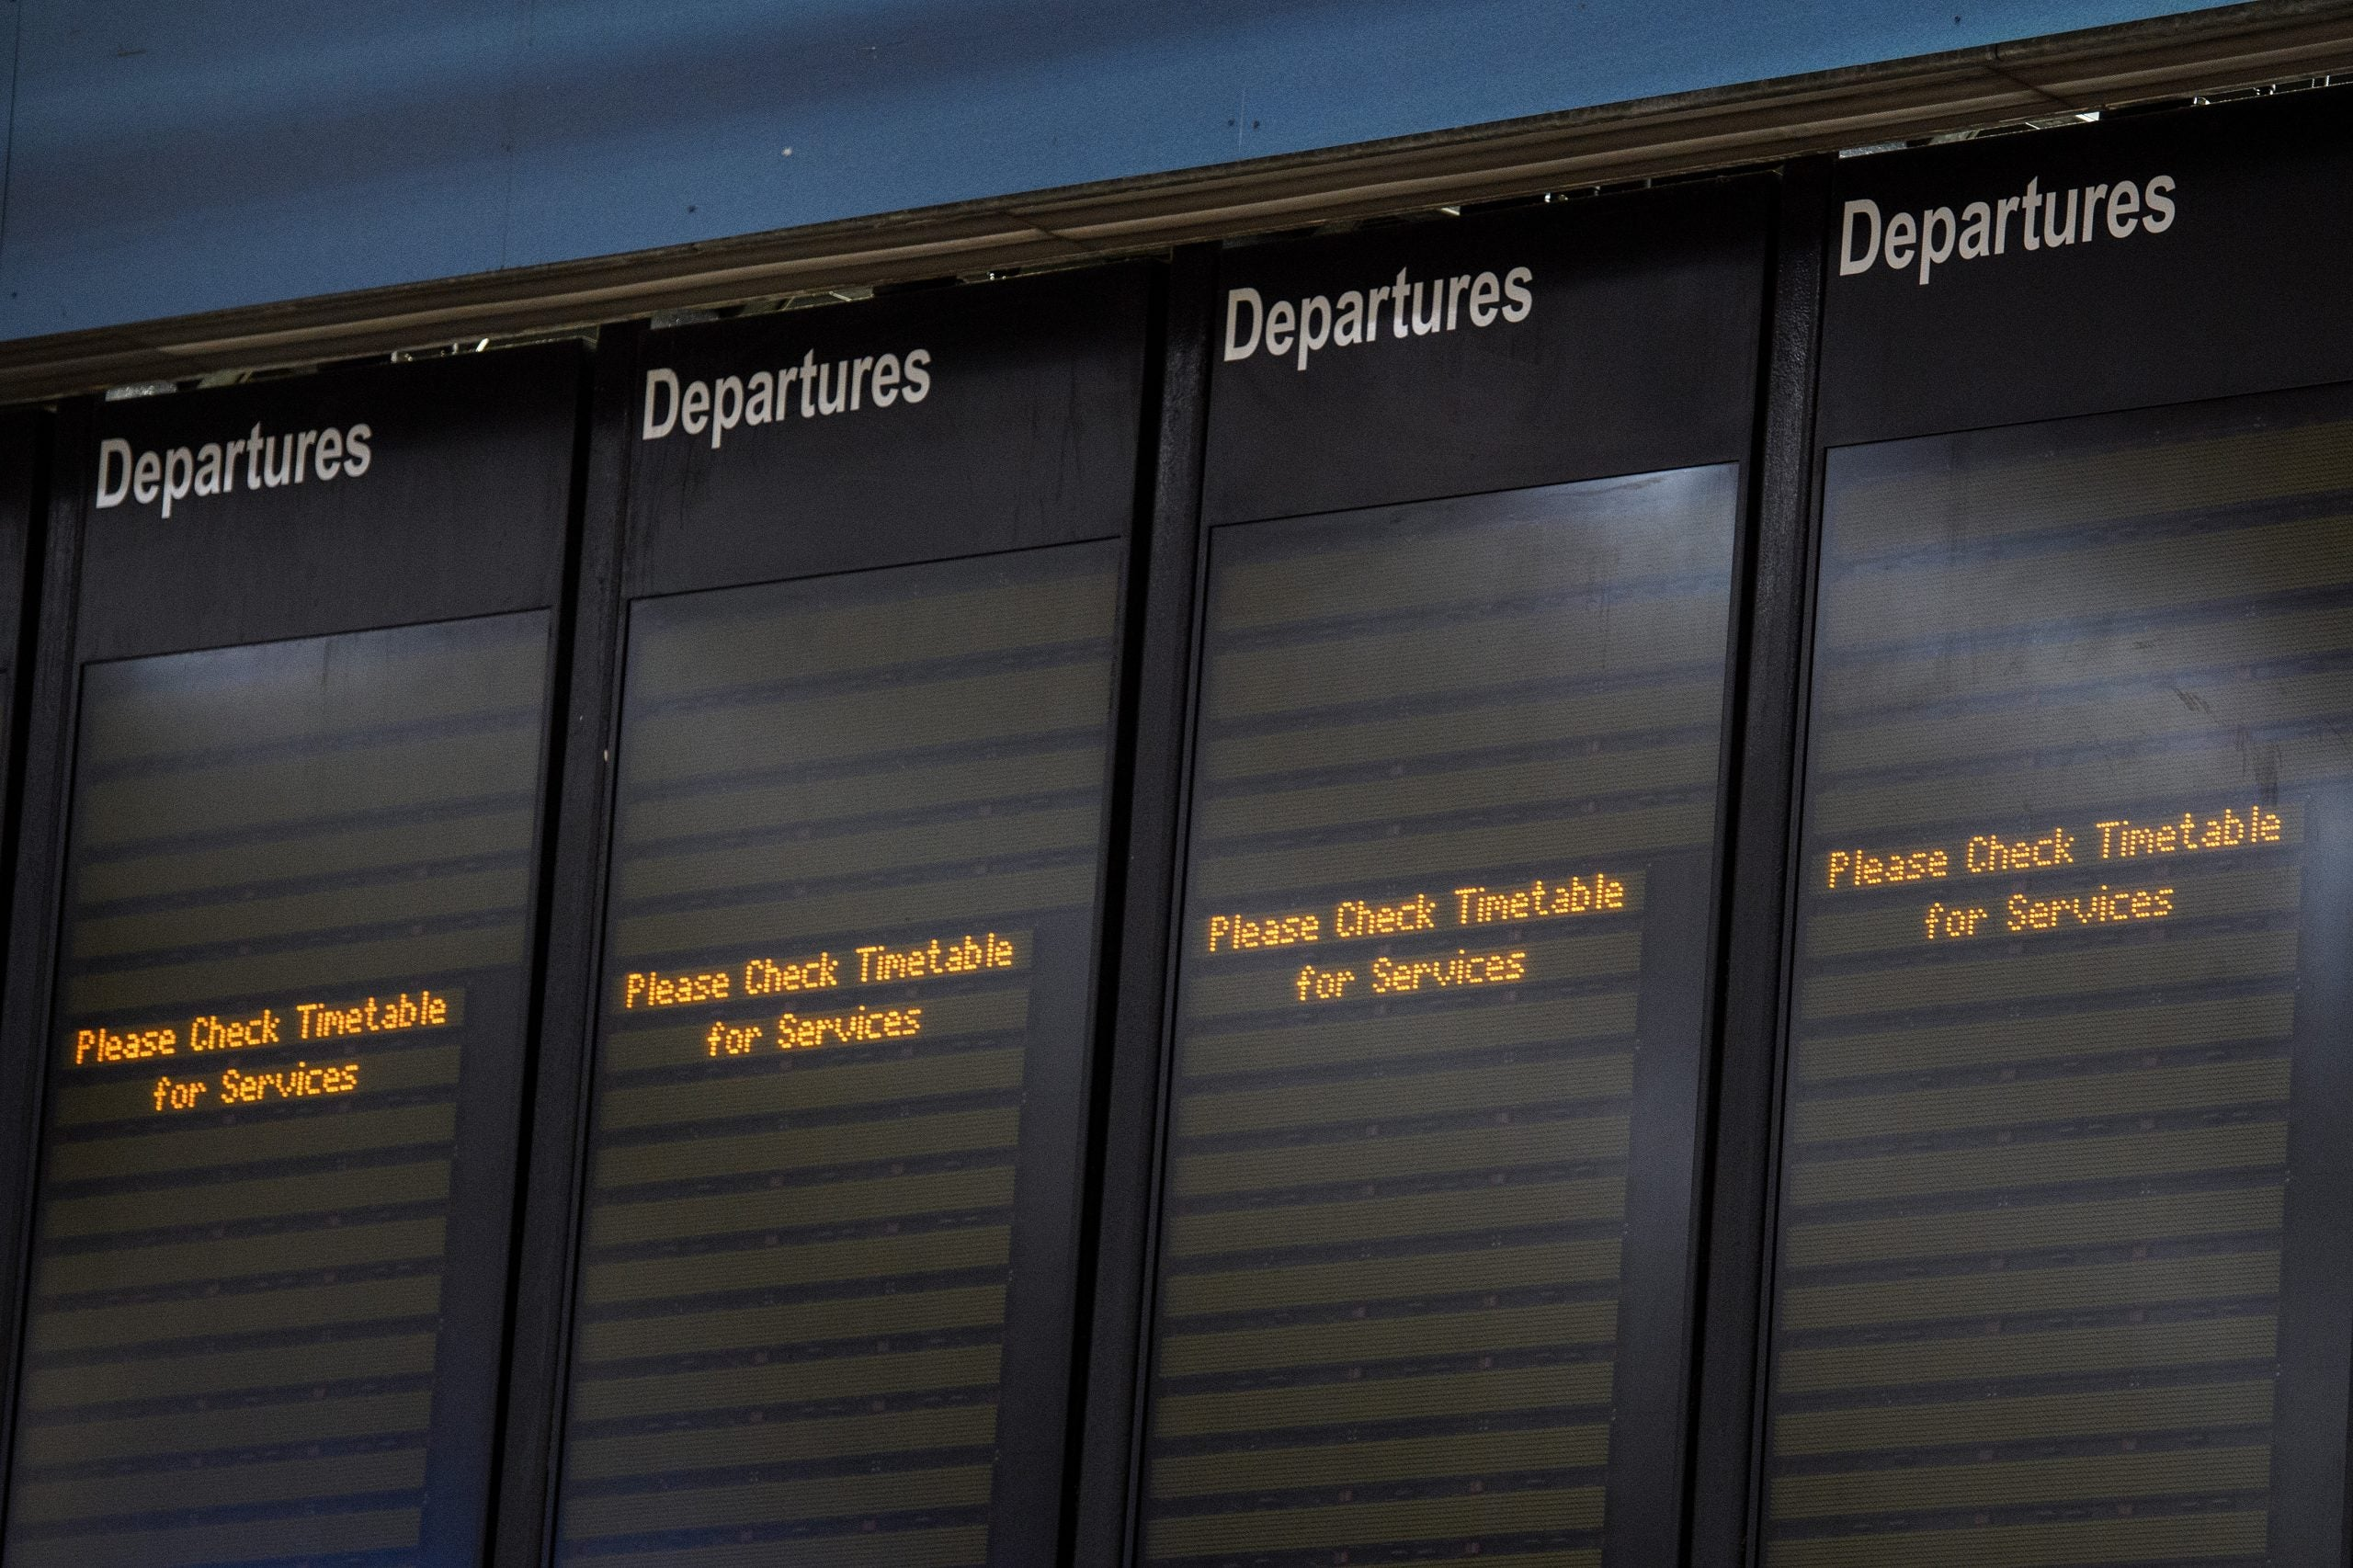 The train disruption is personal: Southern Rail is out to get me